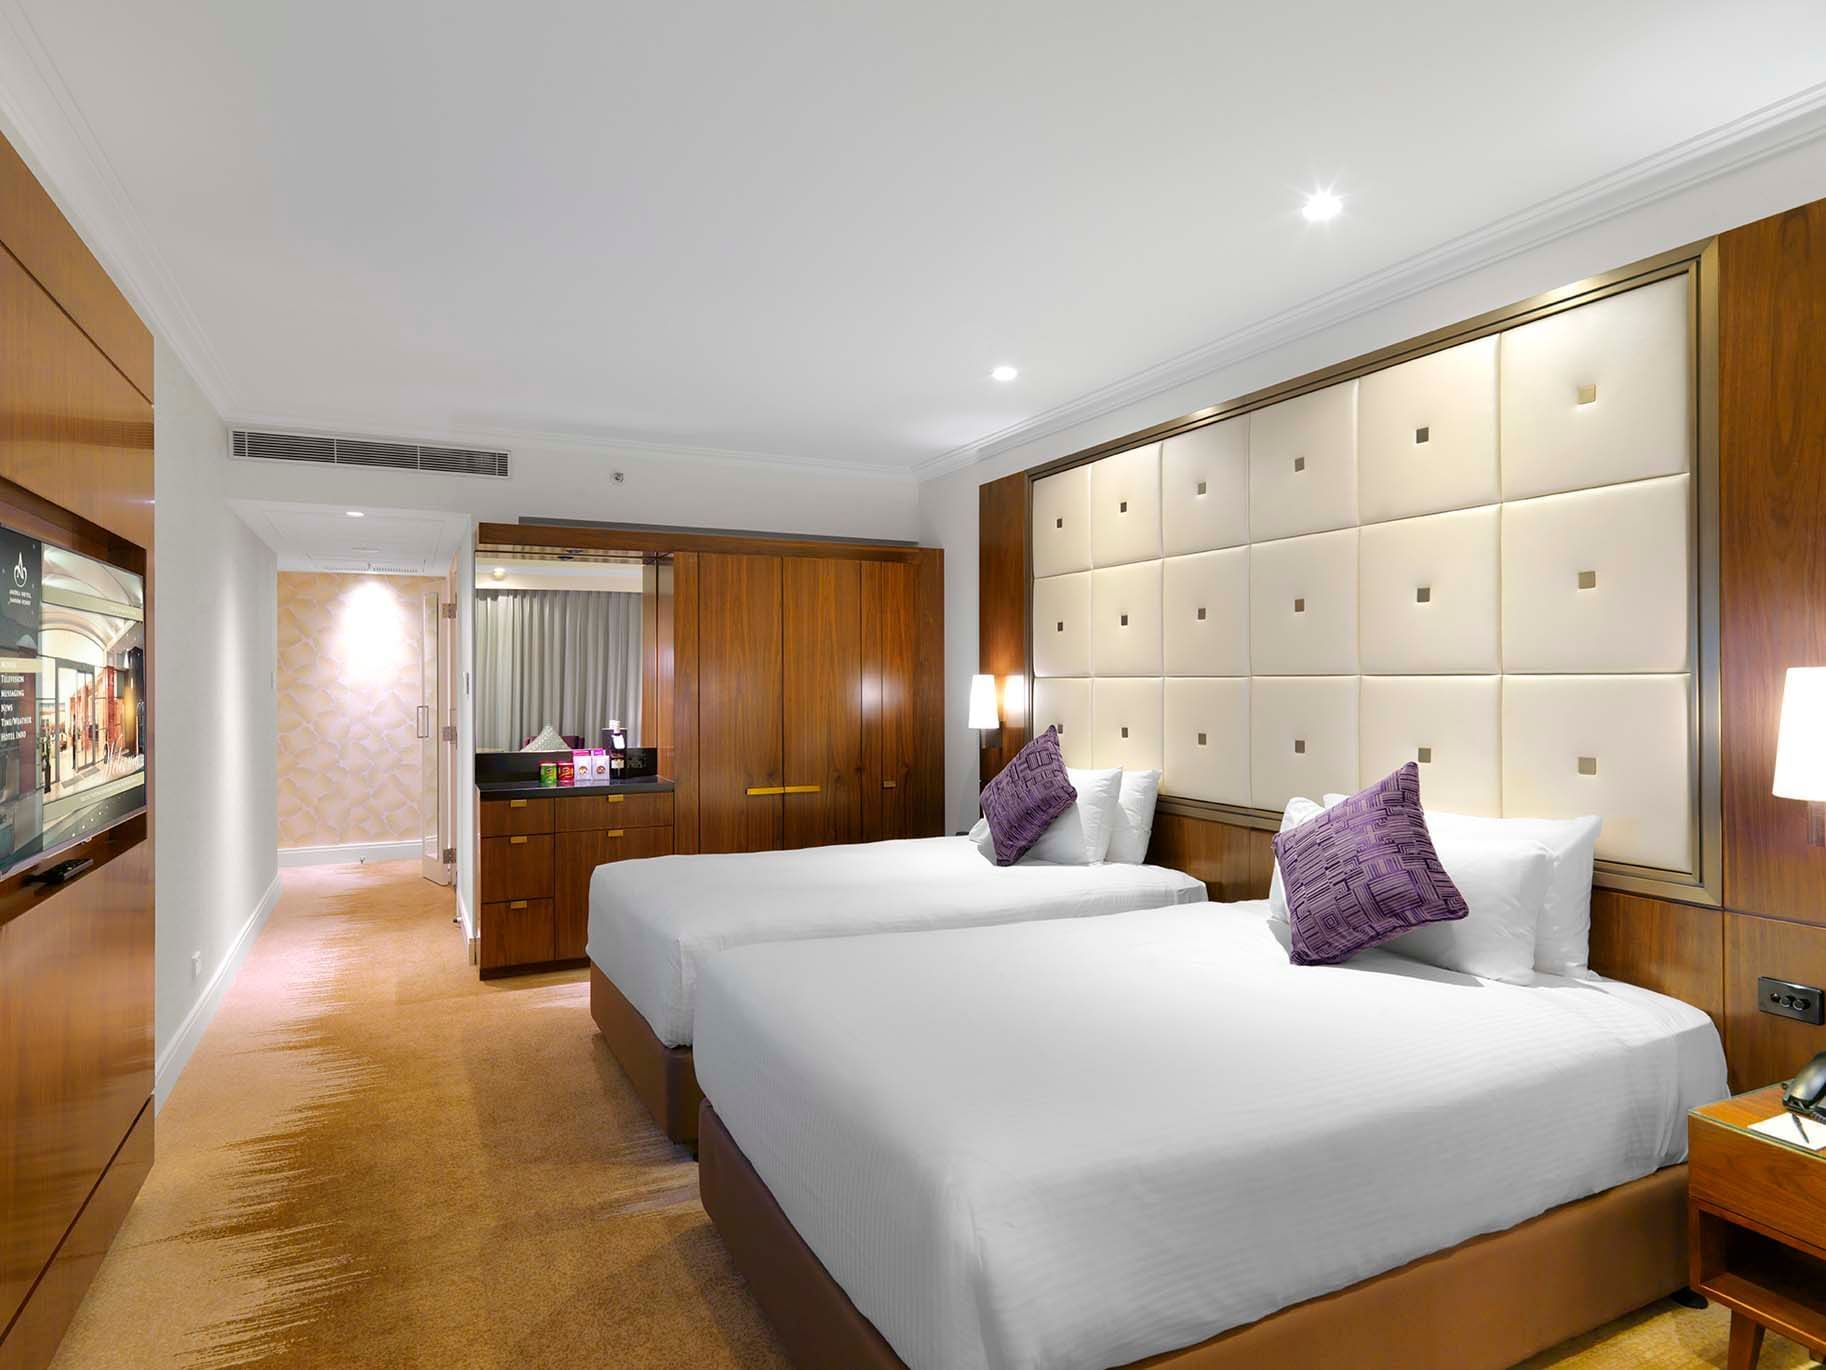 Deluxe Tower Double Double Room at Amora Hotel